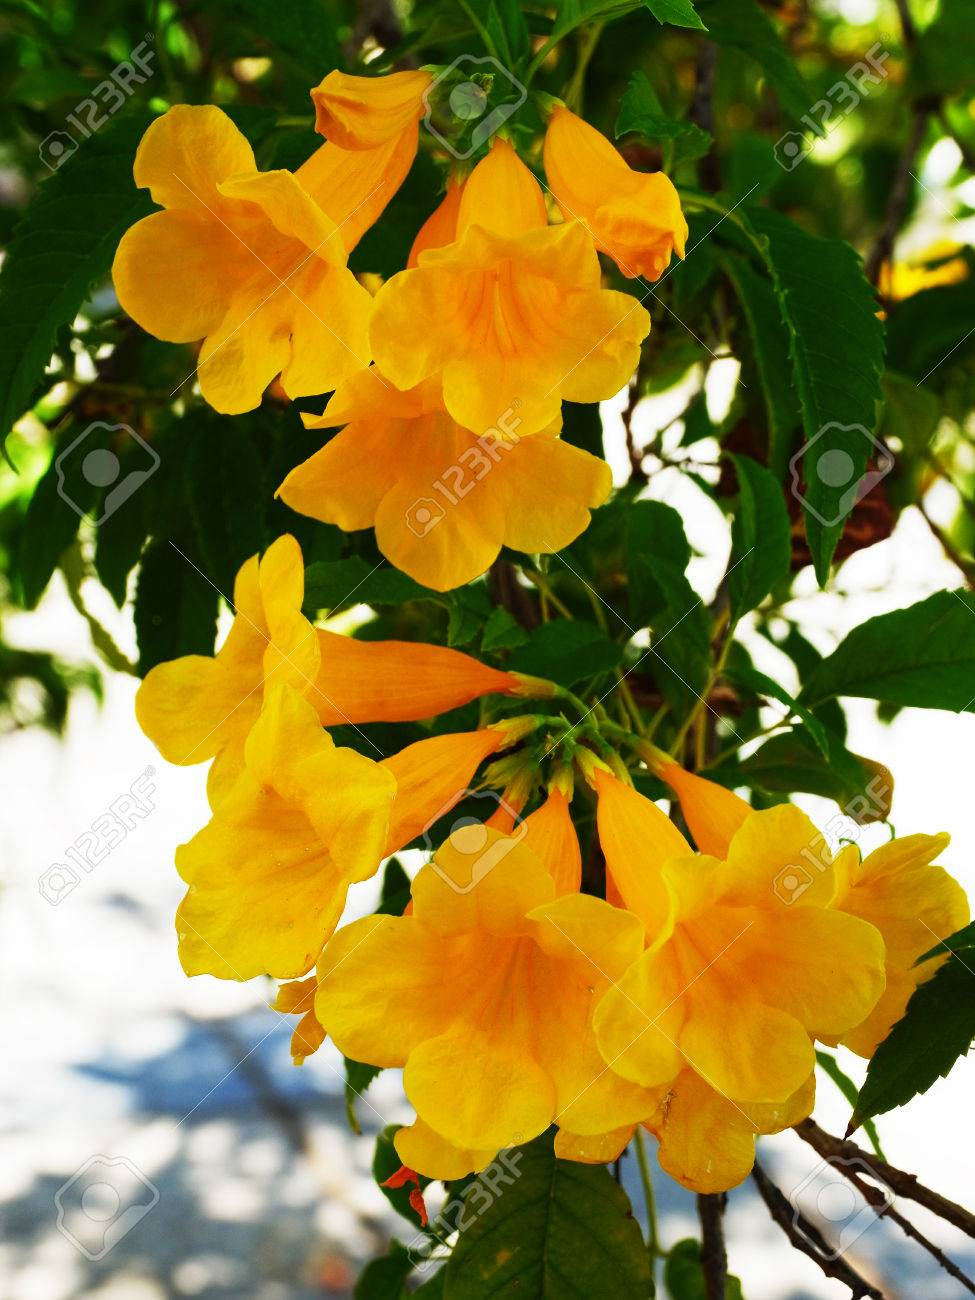 The Bright Golden Yellow Trumpet Shaped Flowers Of Tecoma Stans